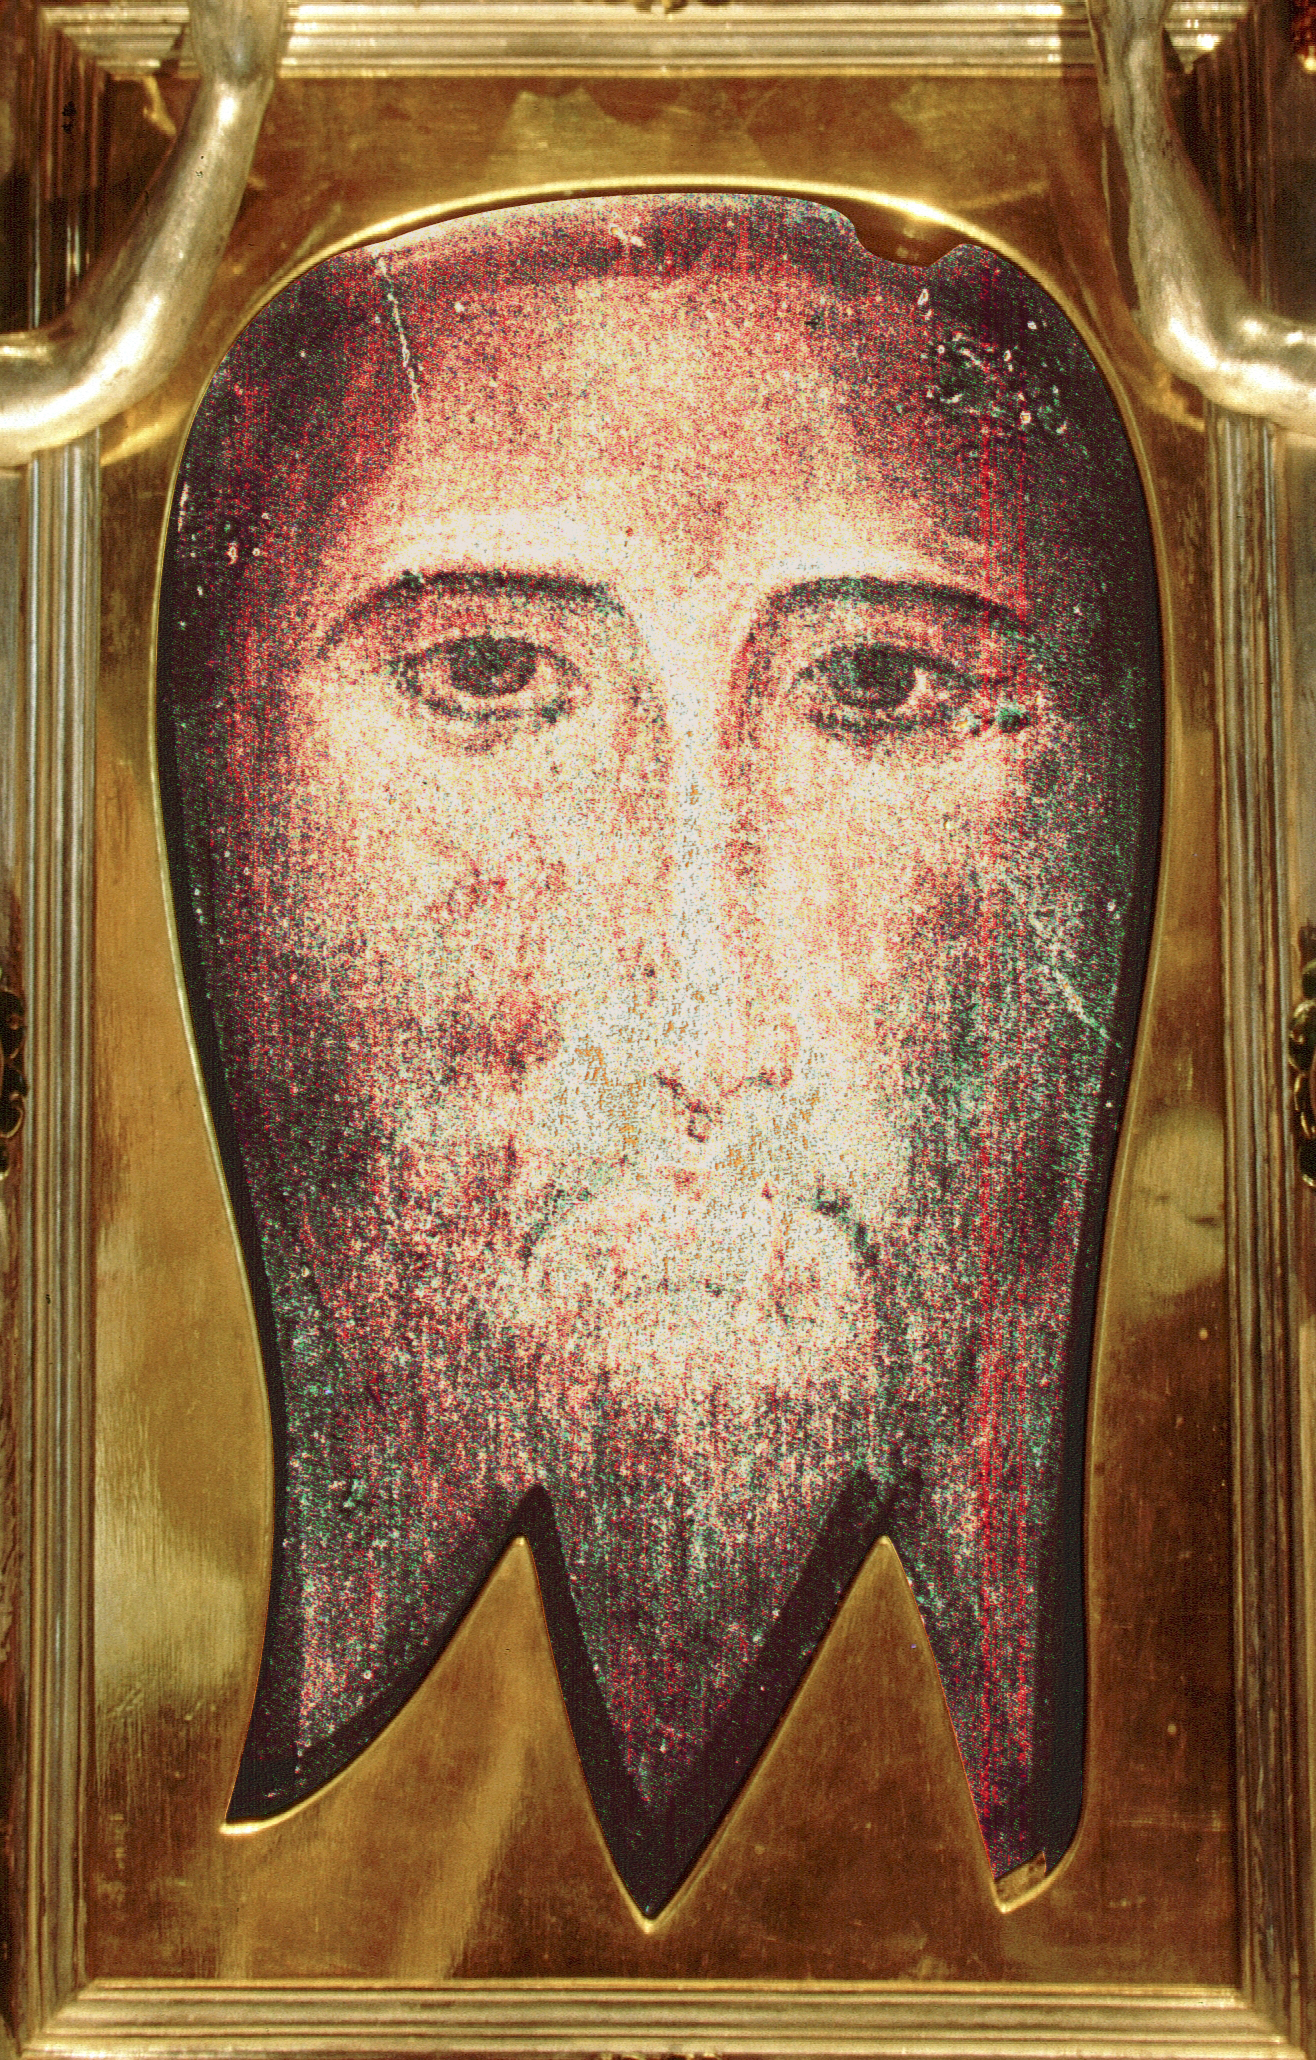 The_San_Silvestro-image-imprint-of-Jesus-non-hand-made-Mandylion_visage